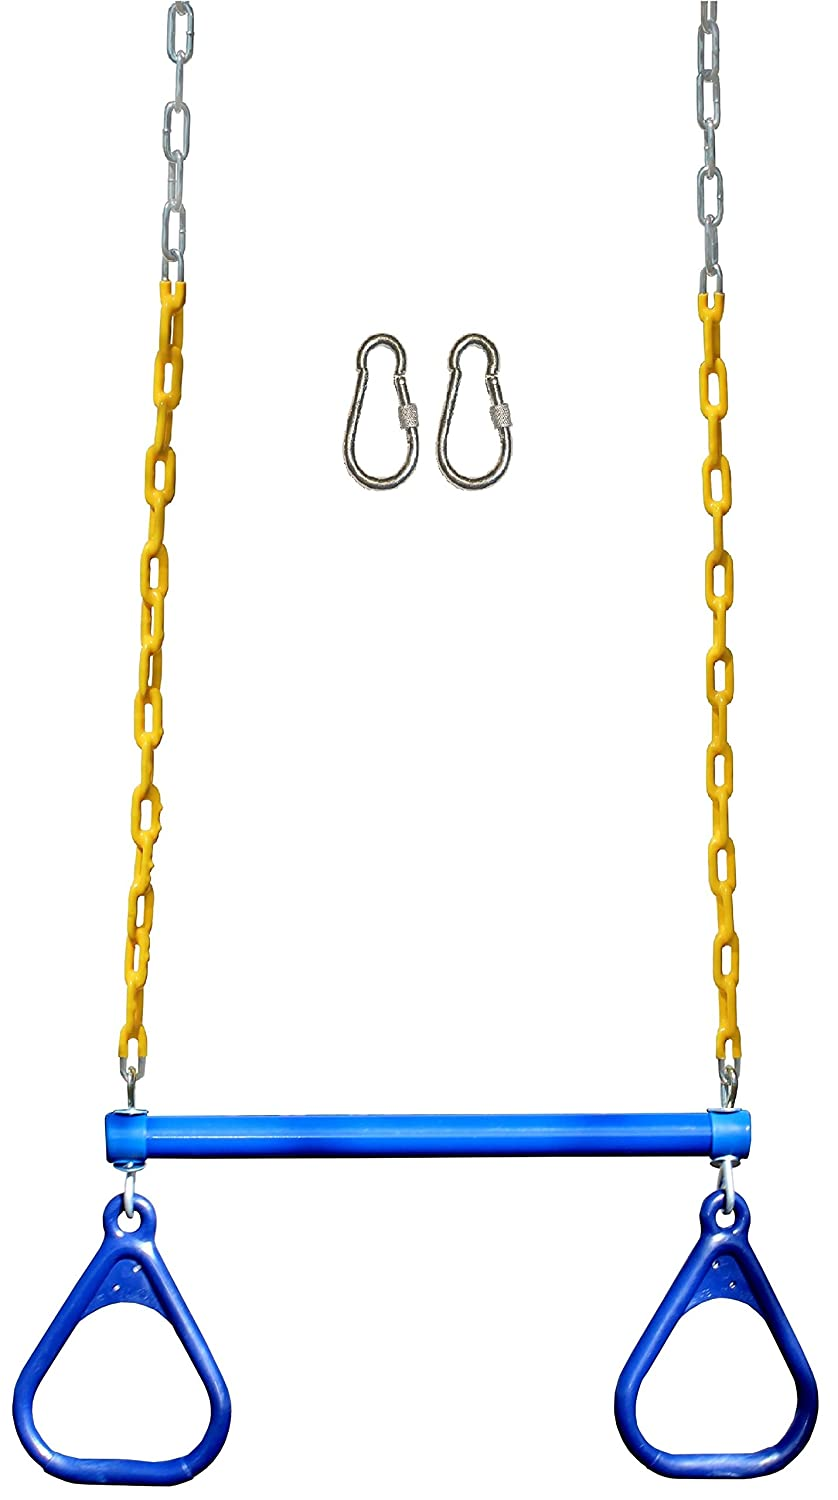 Jungle Gym Kingdom Trapeze Swing Bar with Rings 48 Heavy Duty Chain Swing Set Accessories & Locking Carabiners - Blue